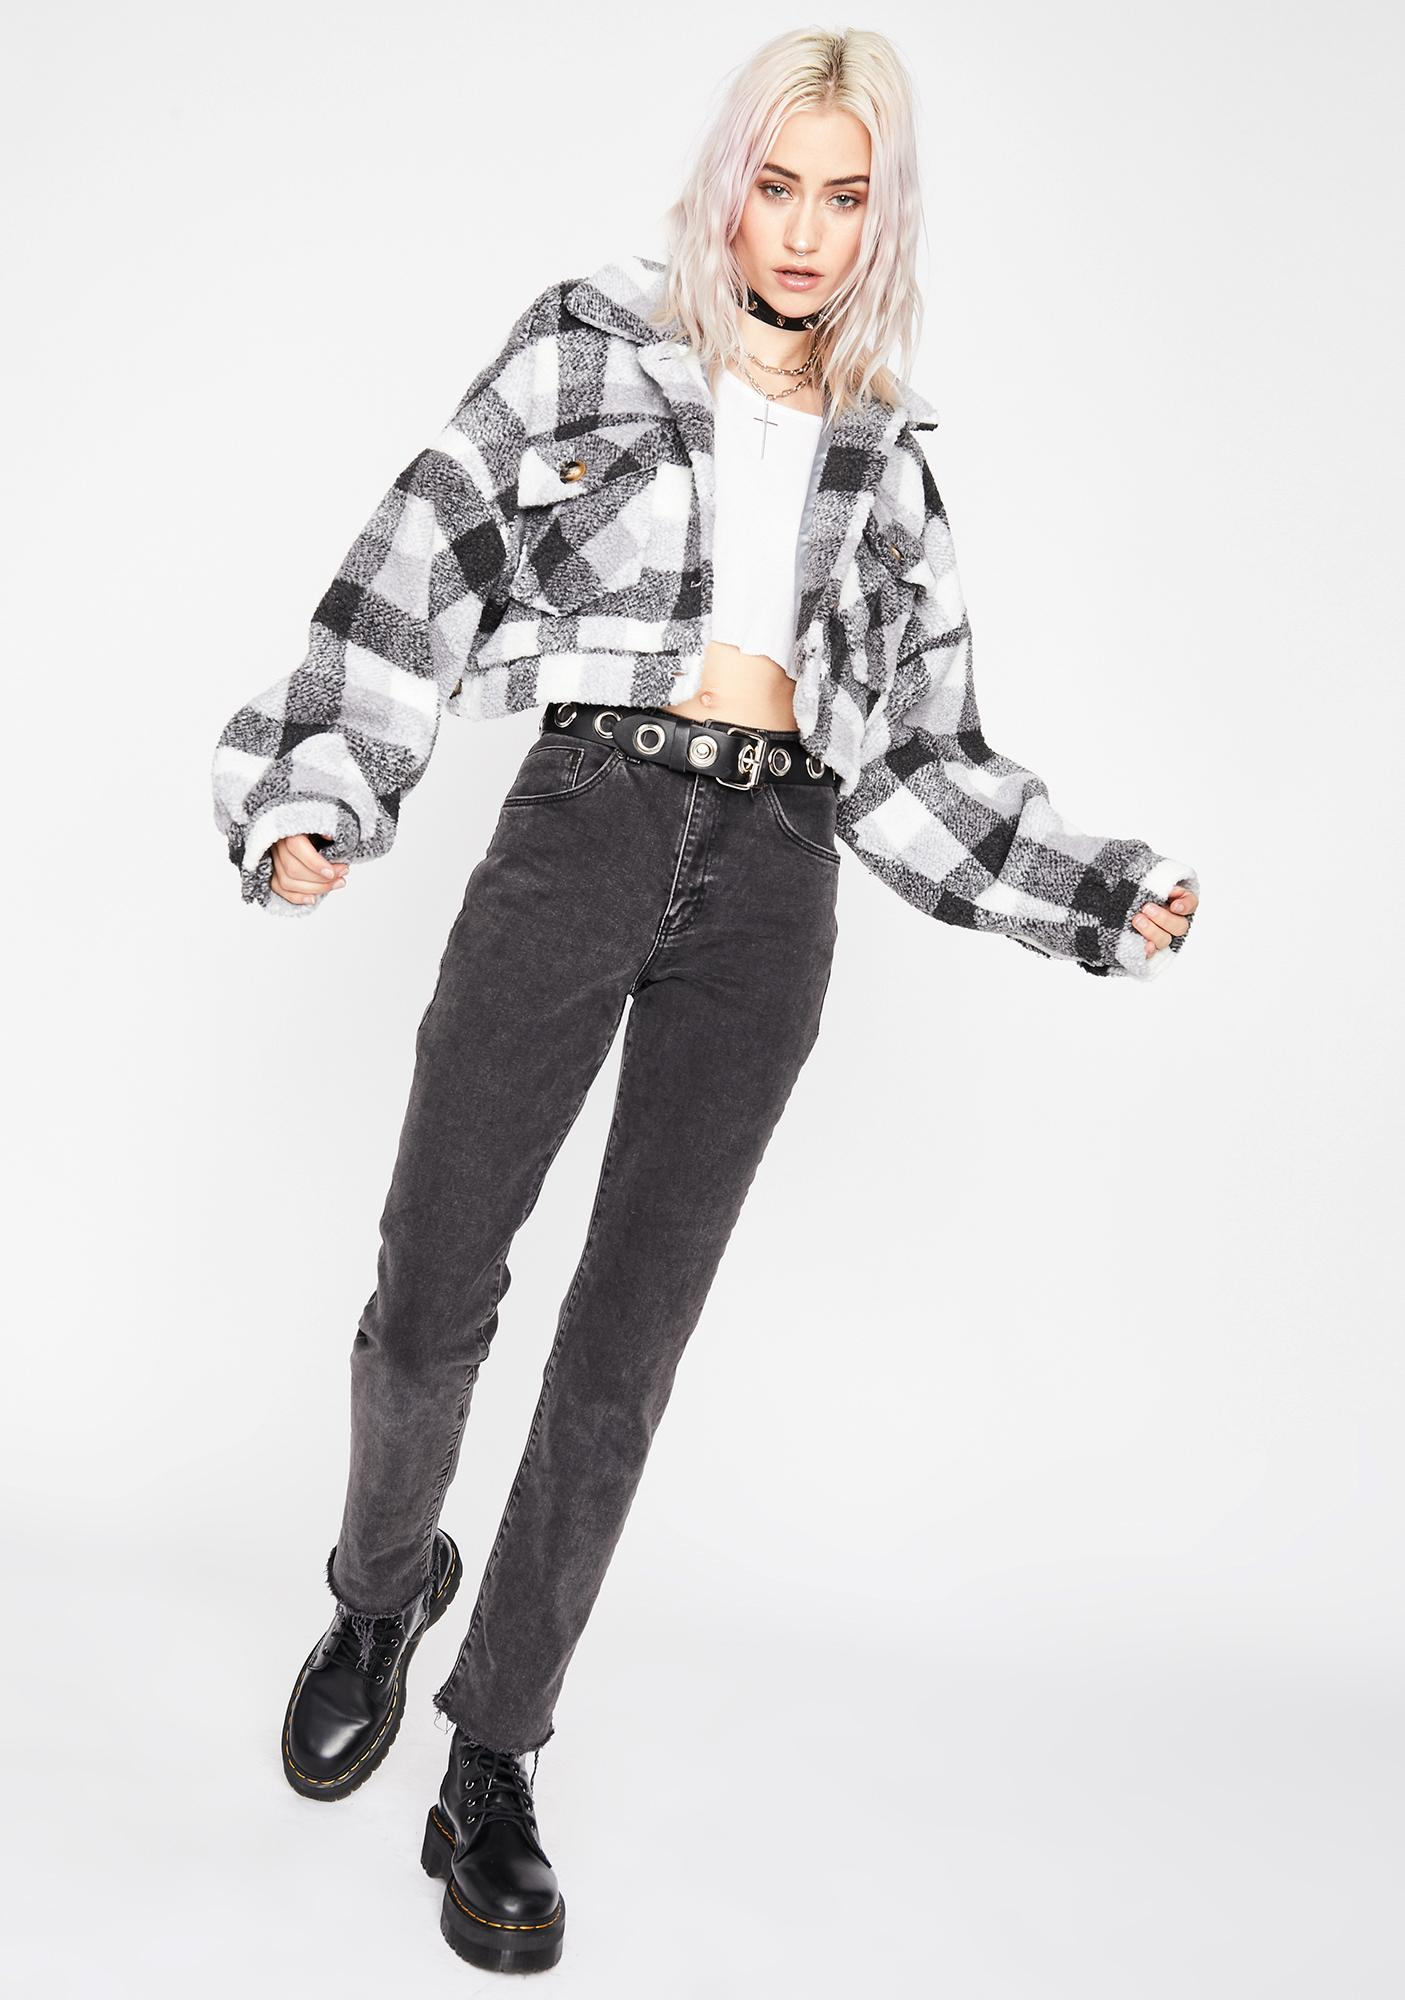 Plaidly Yours Sherpa Jacket